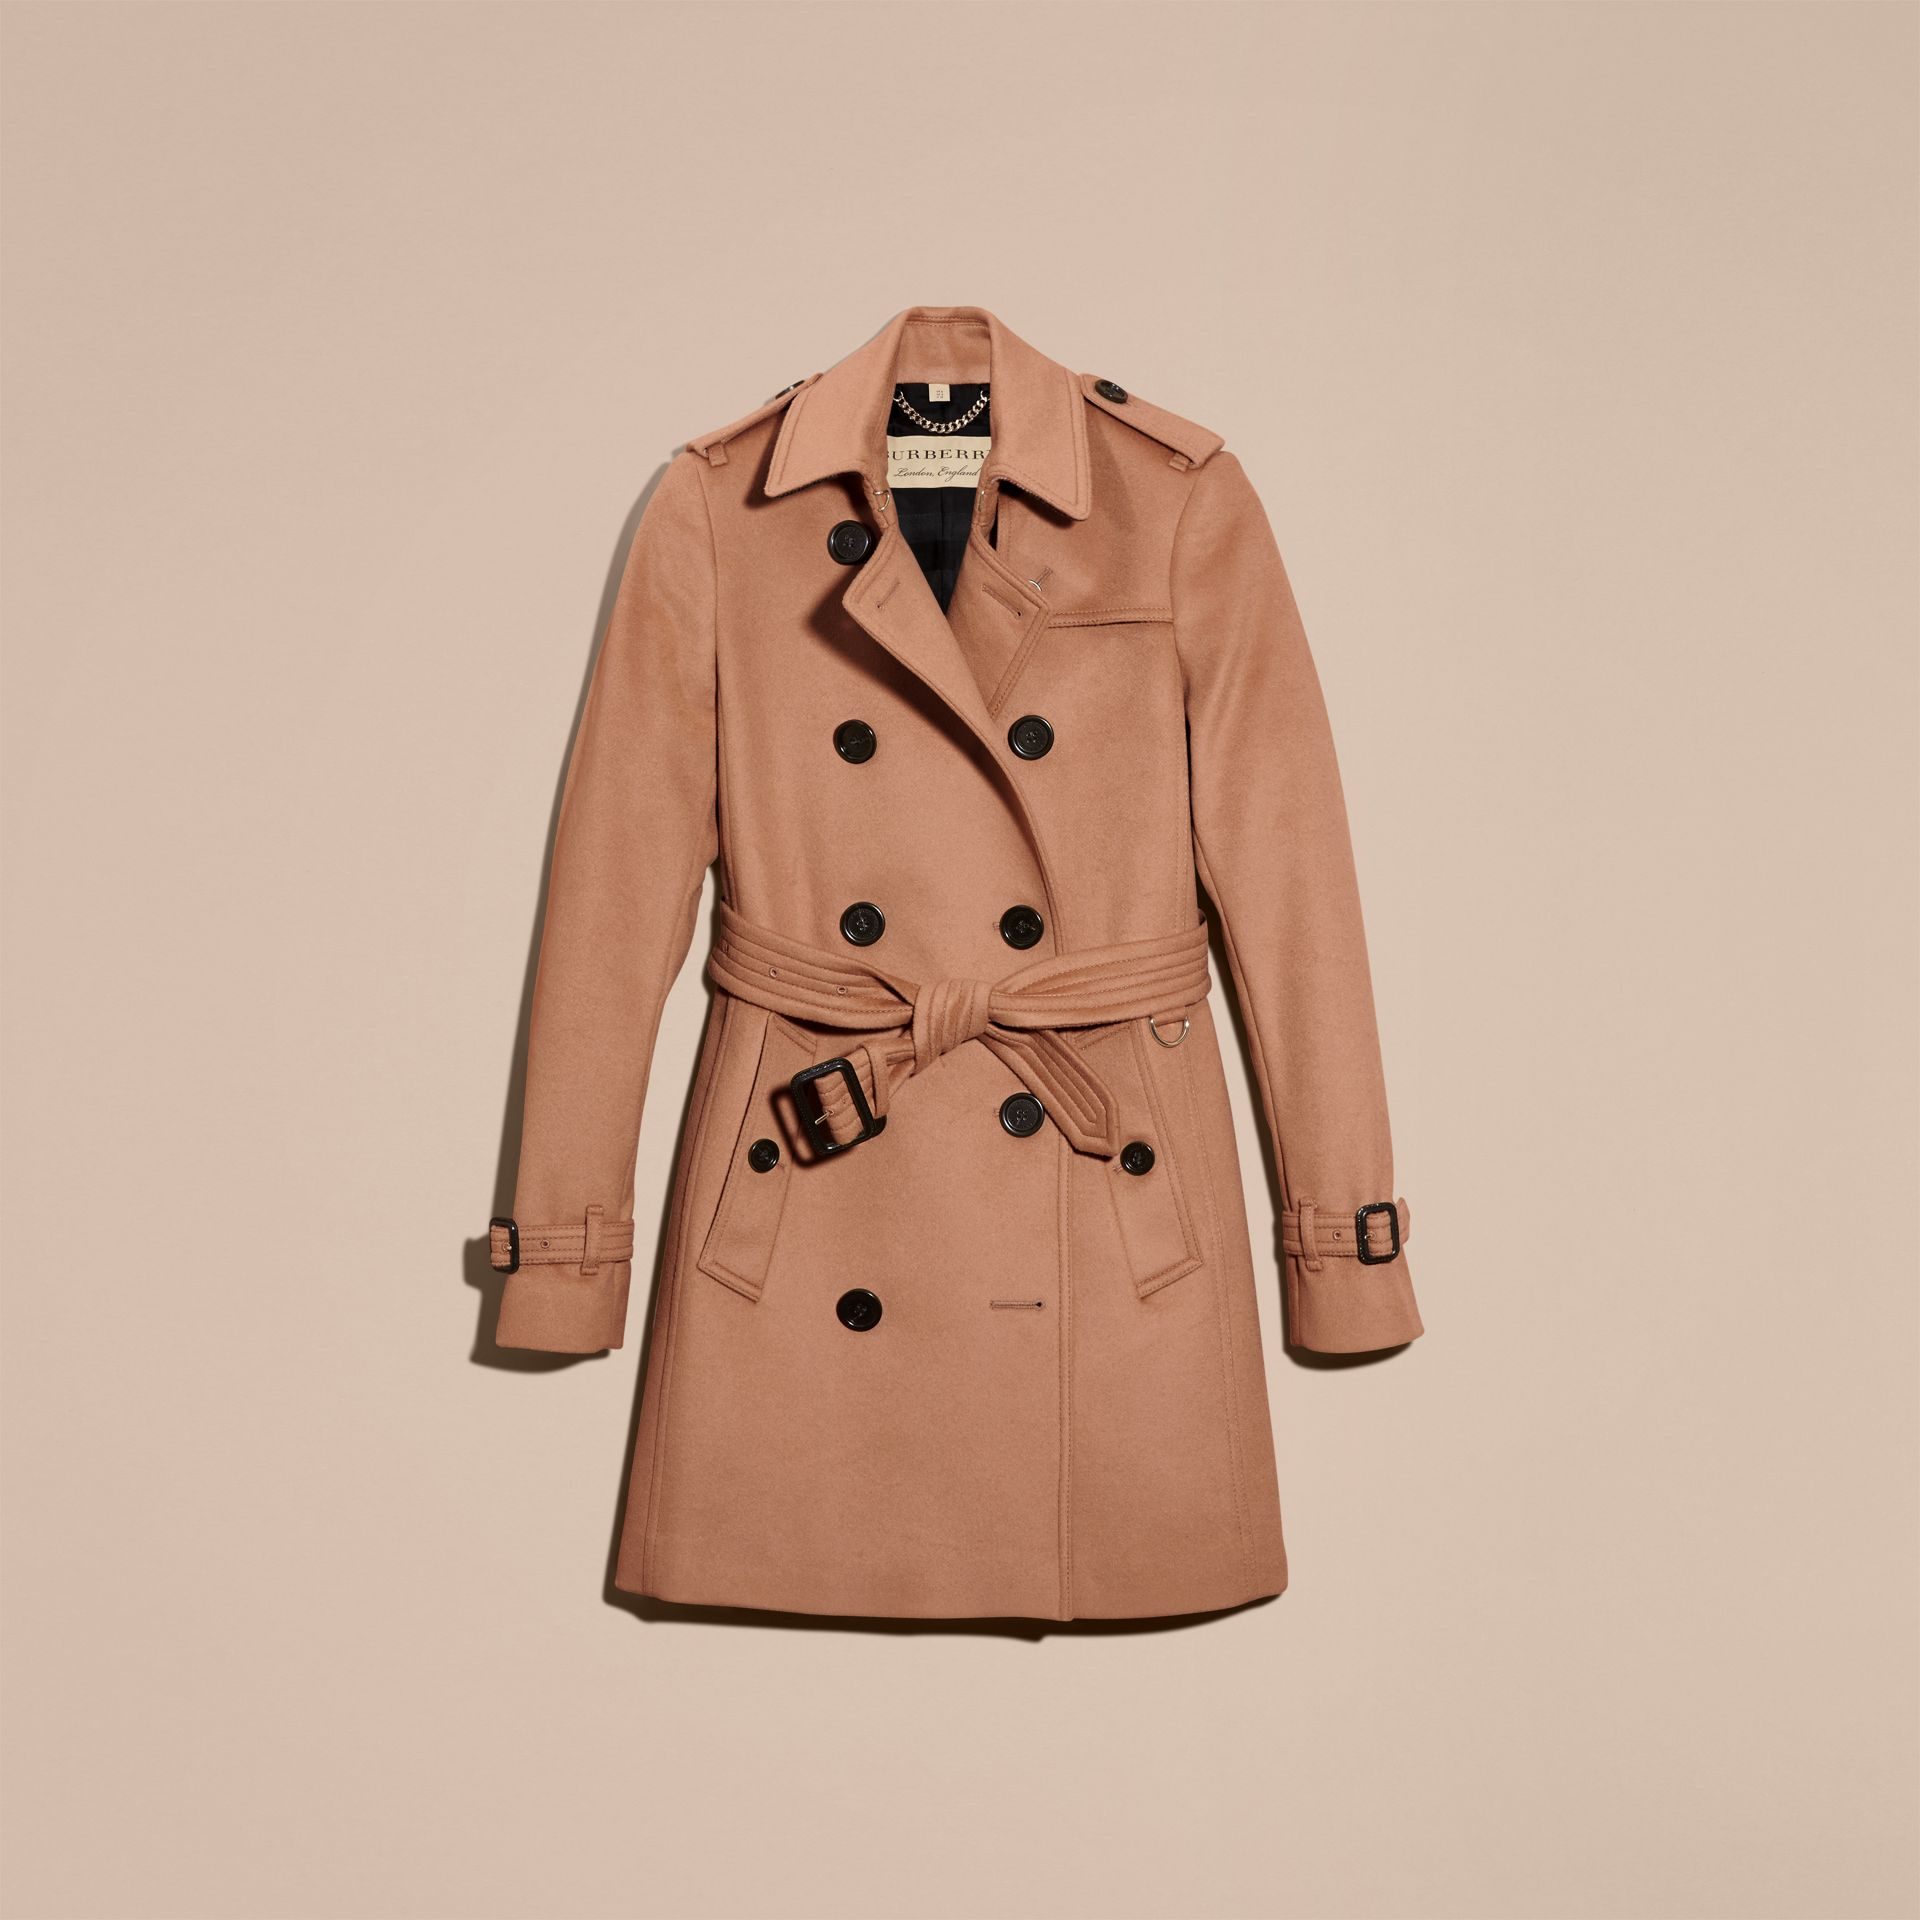 Wool Cashmere Trench Coat in Camel - Women | Burberry - gallery image 4